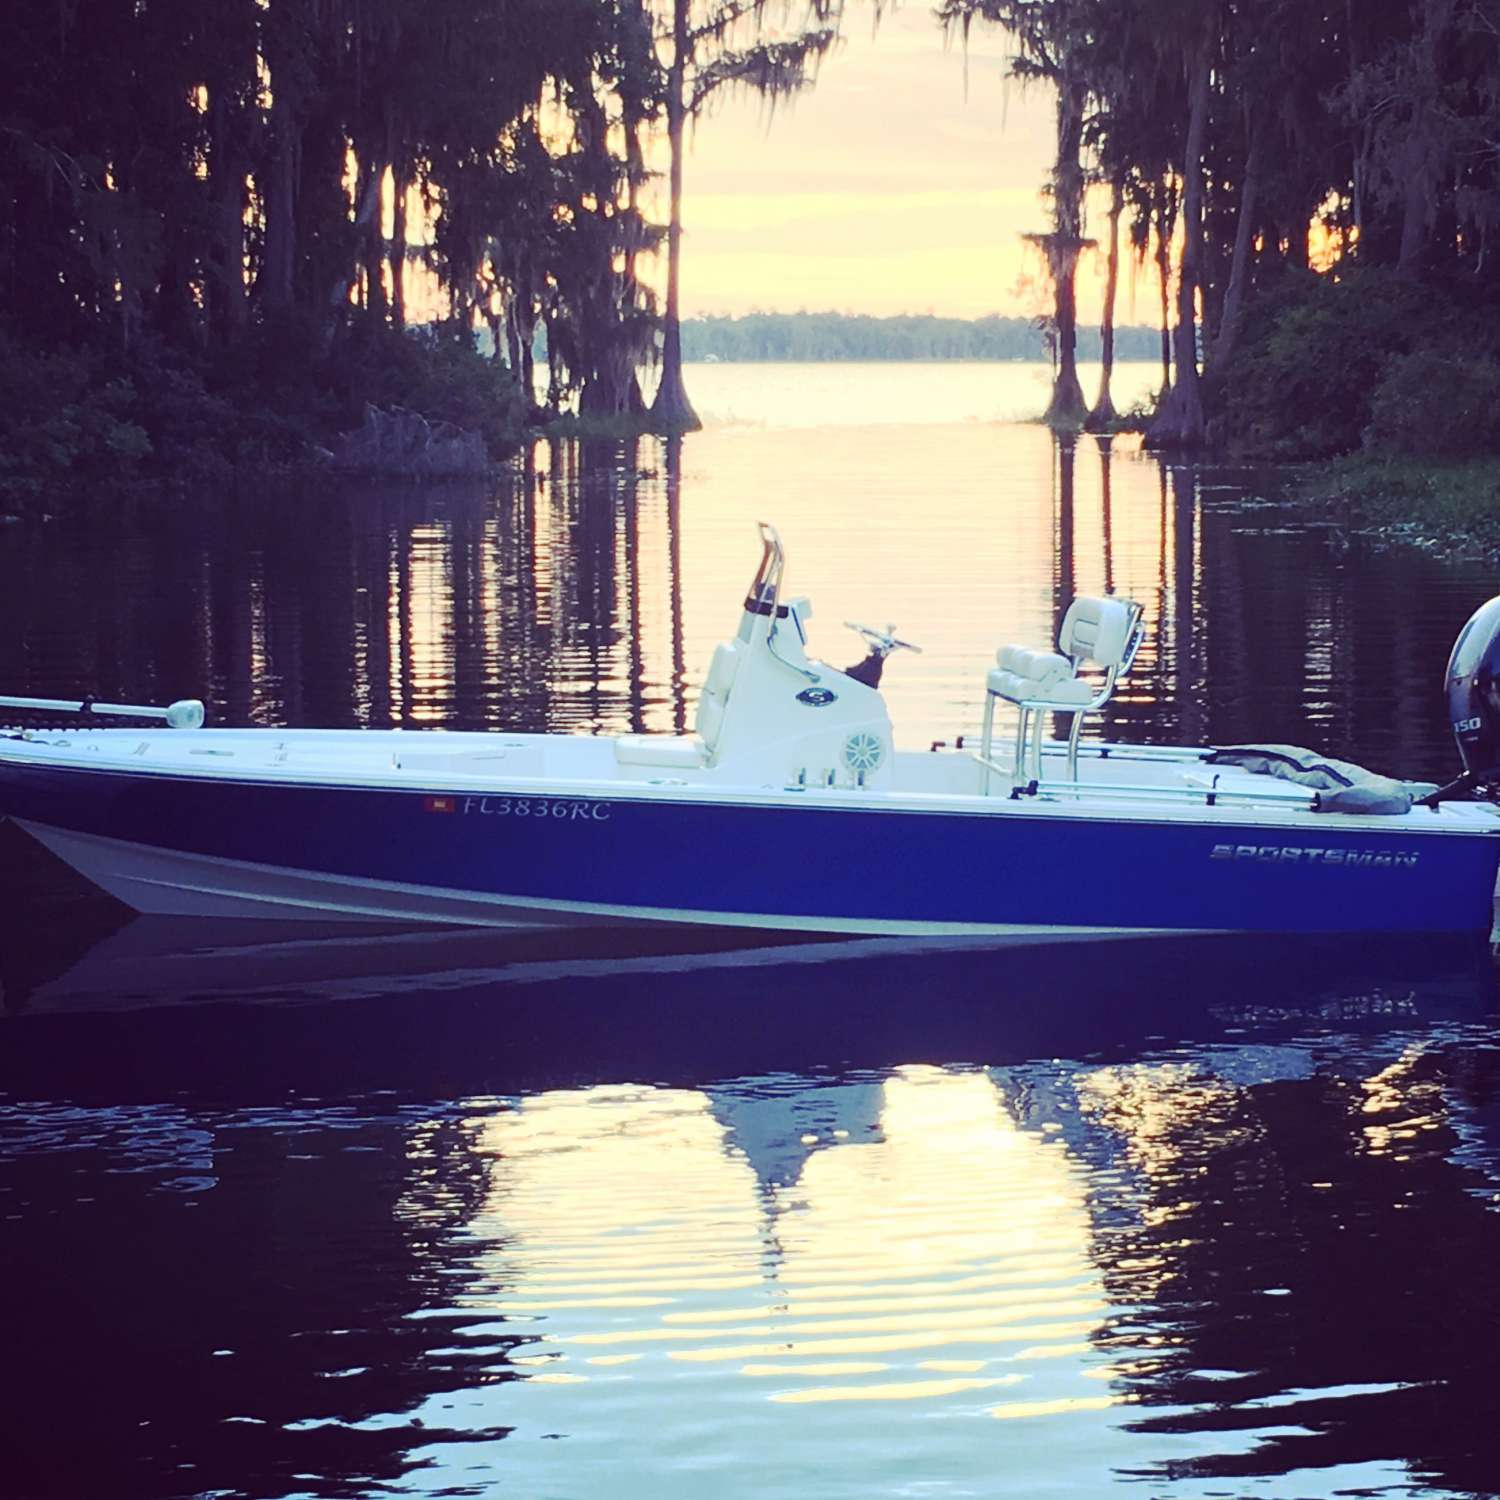 Title: Evening On The Lake - On board their Sportsman Tournament 214 Bay Boat - Location: Ormond Beach, Florida. Participating in the Photo Contest #SportsmanOctober2016